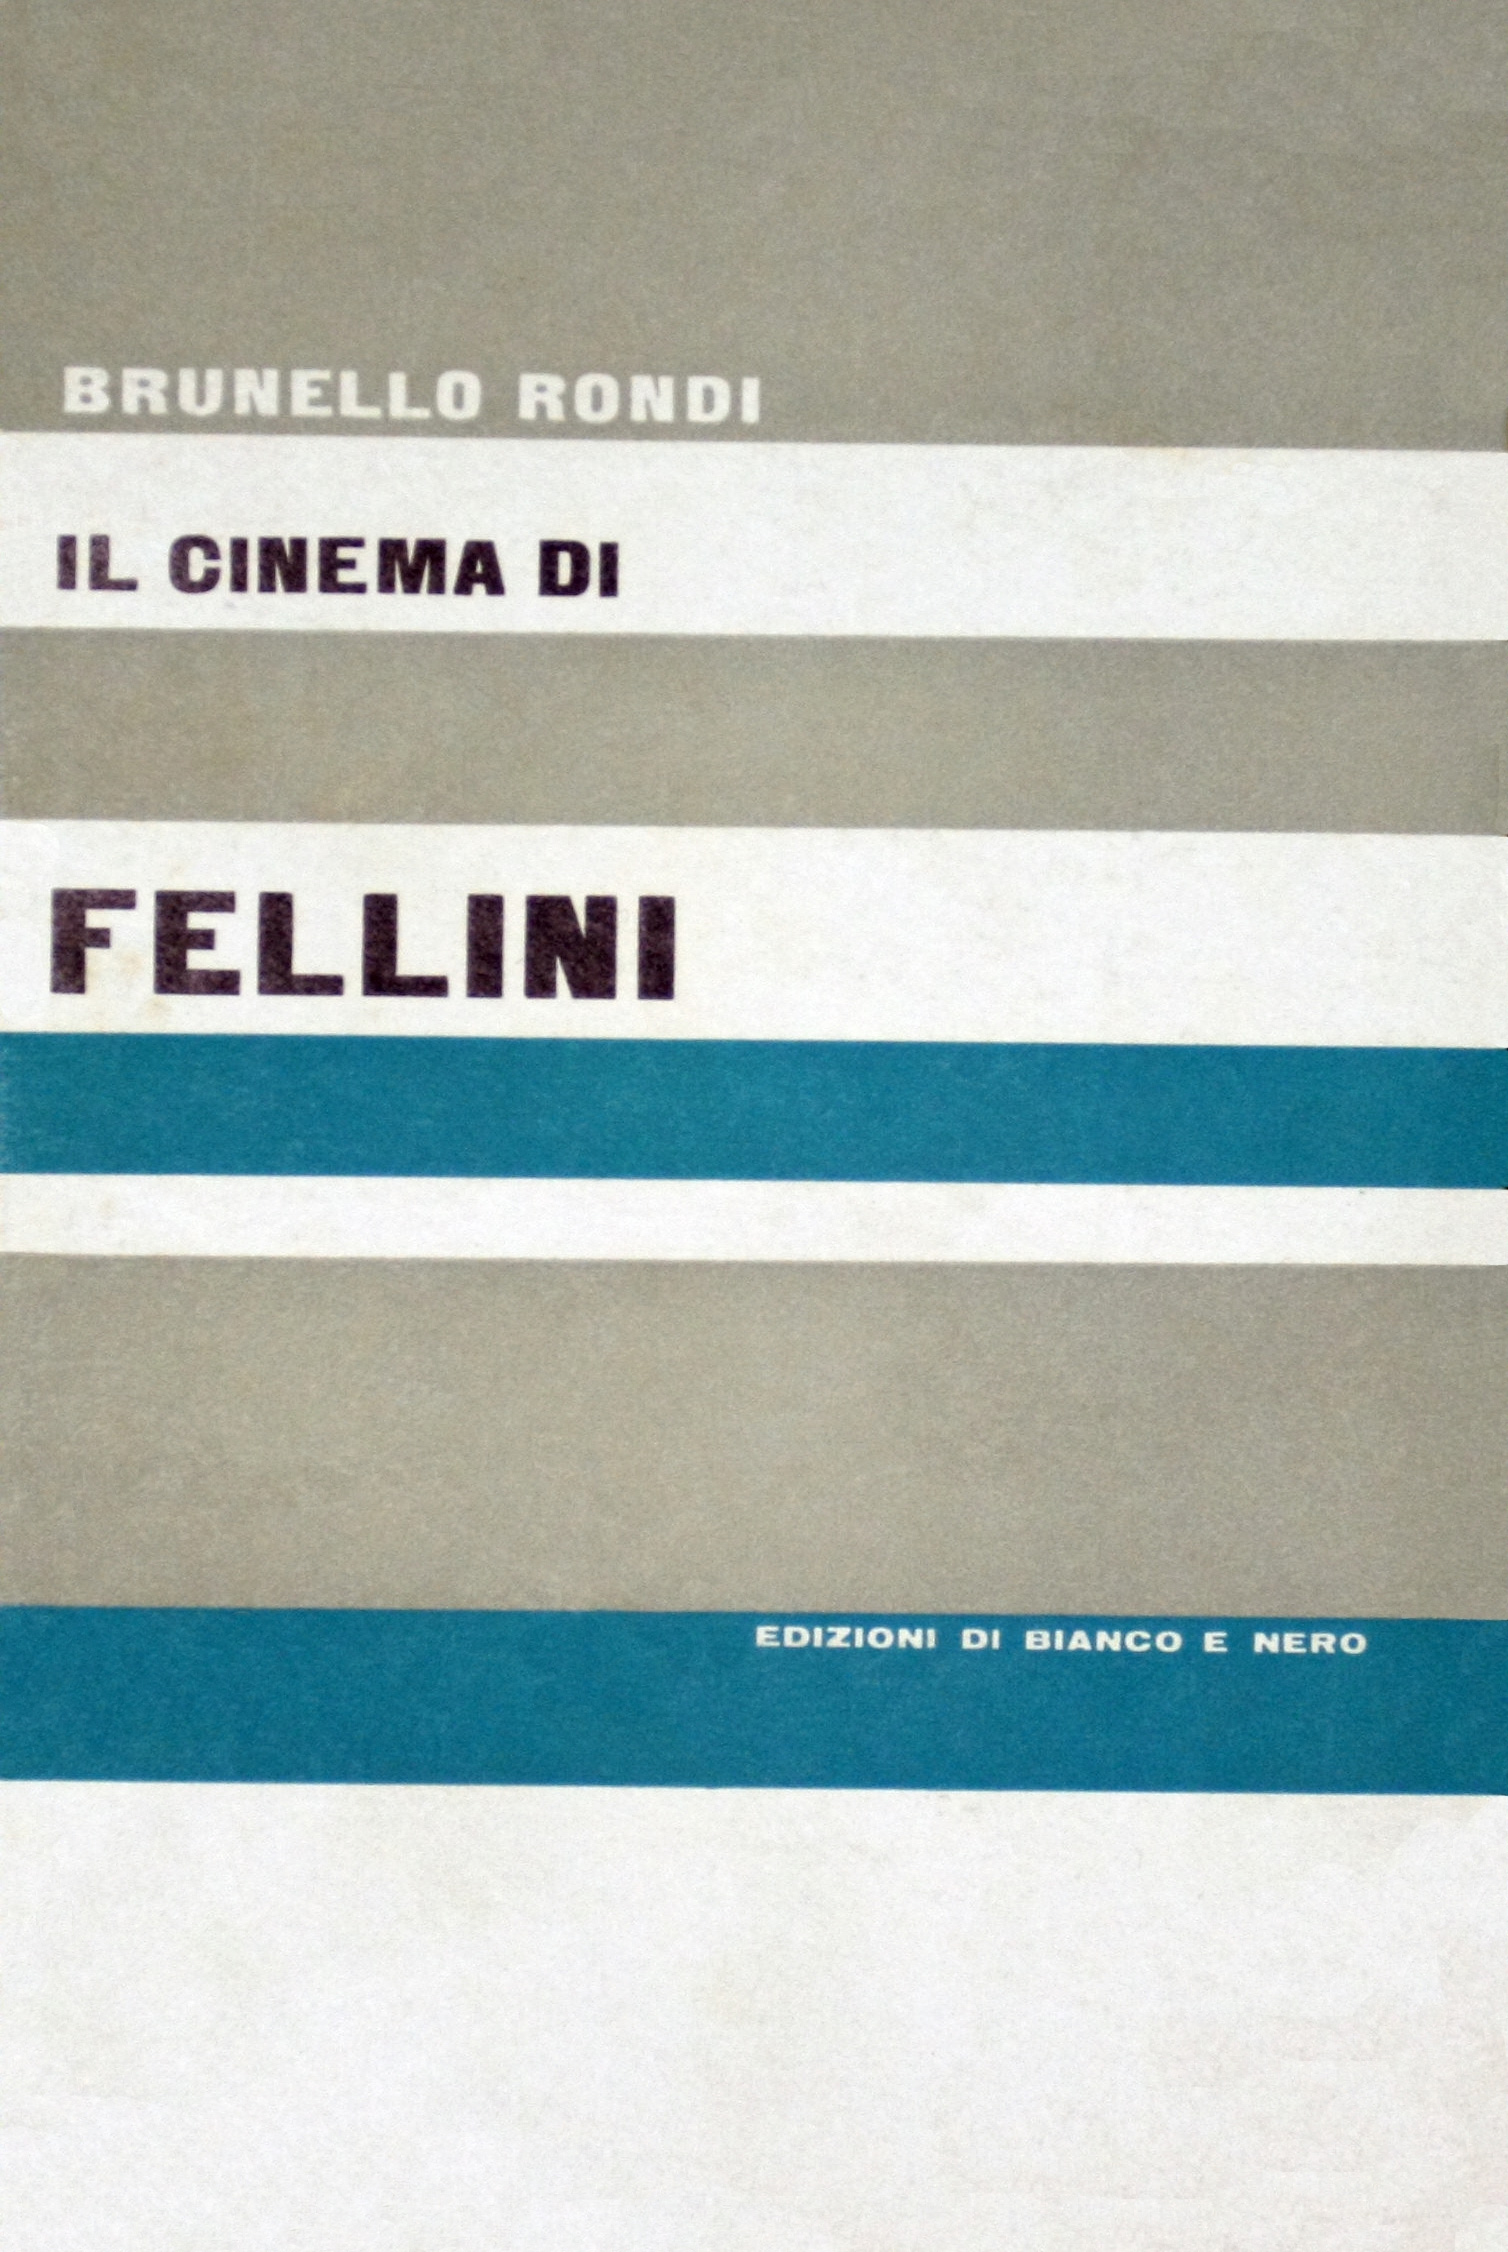 Cinema di Fellini